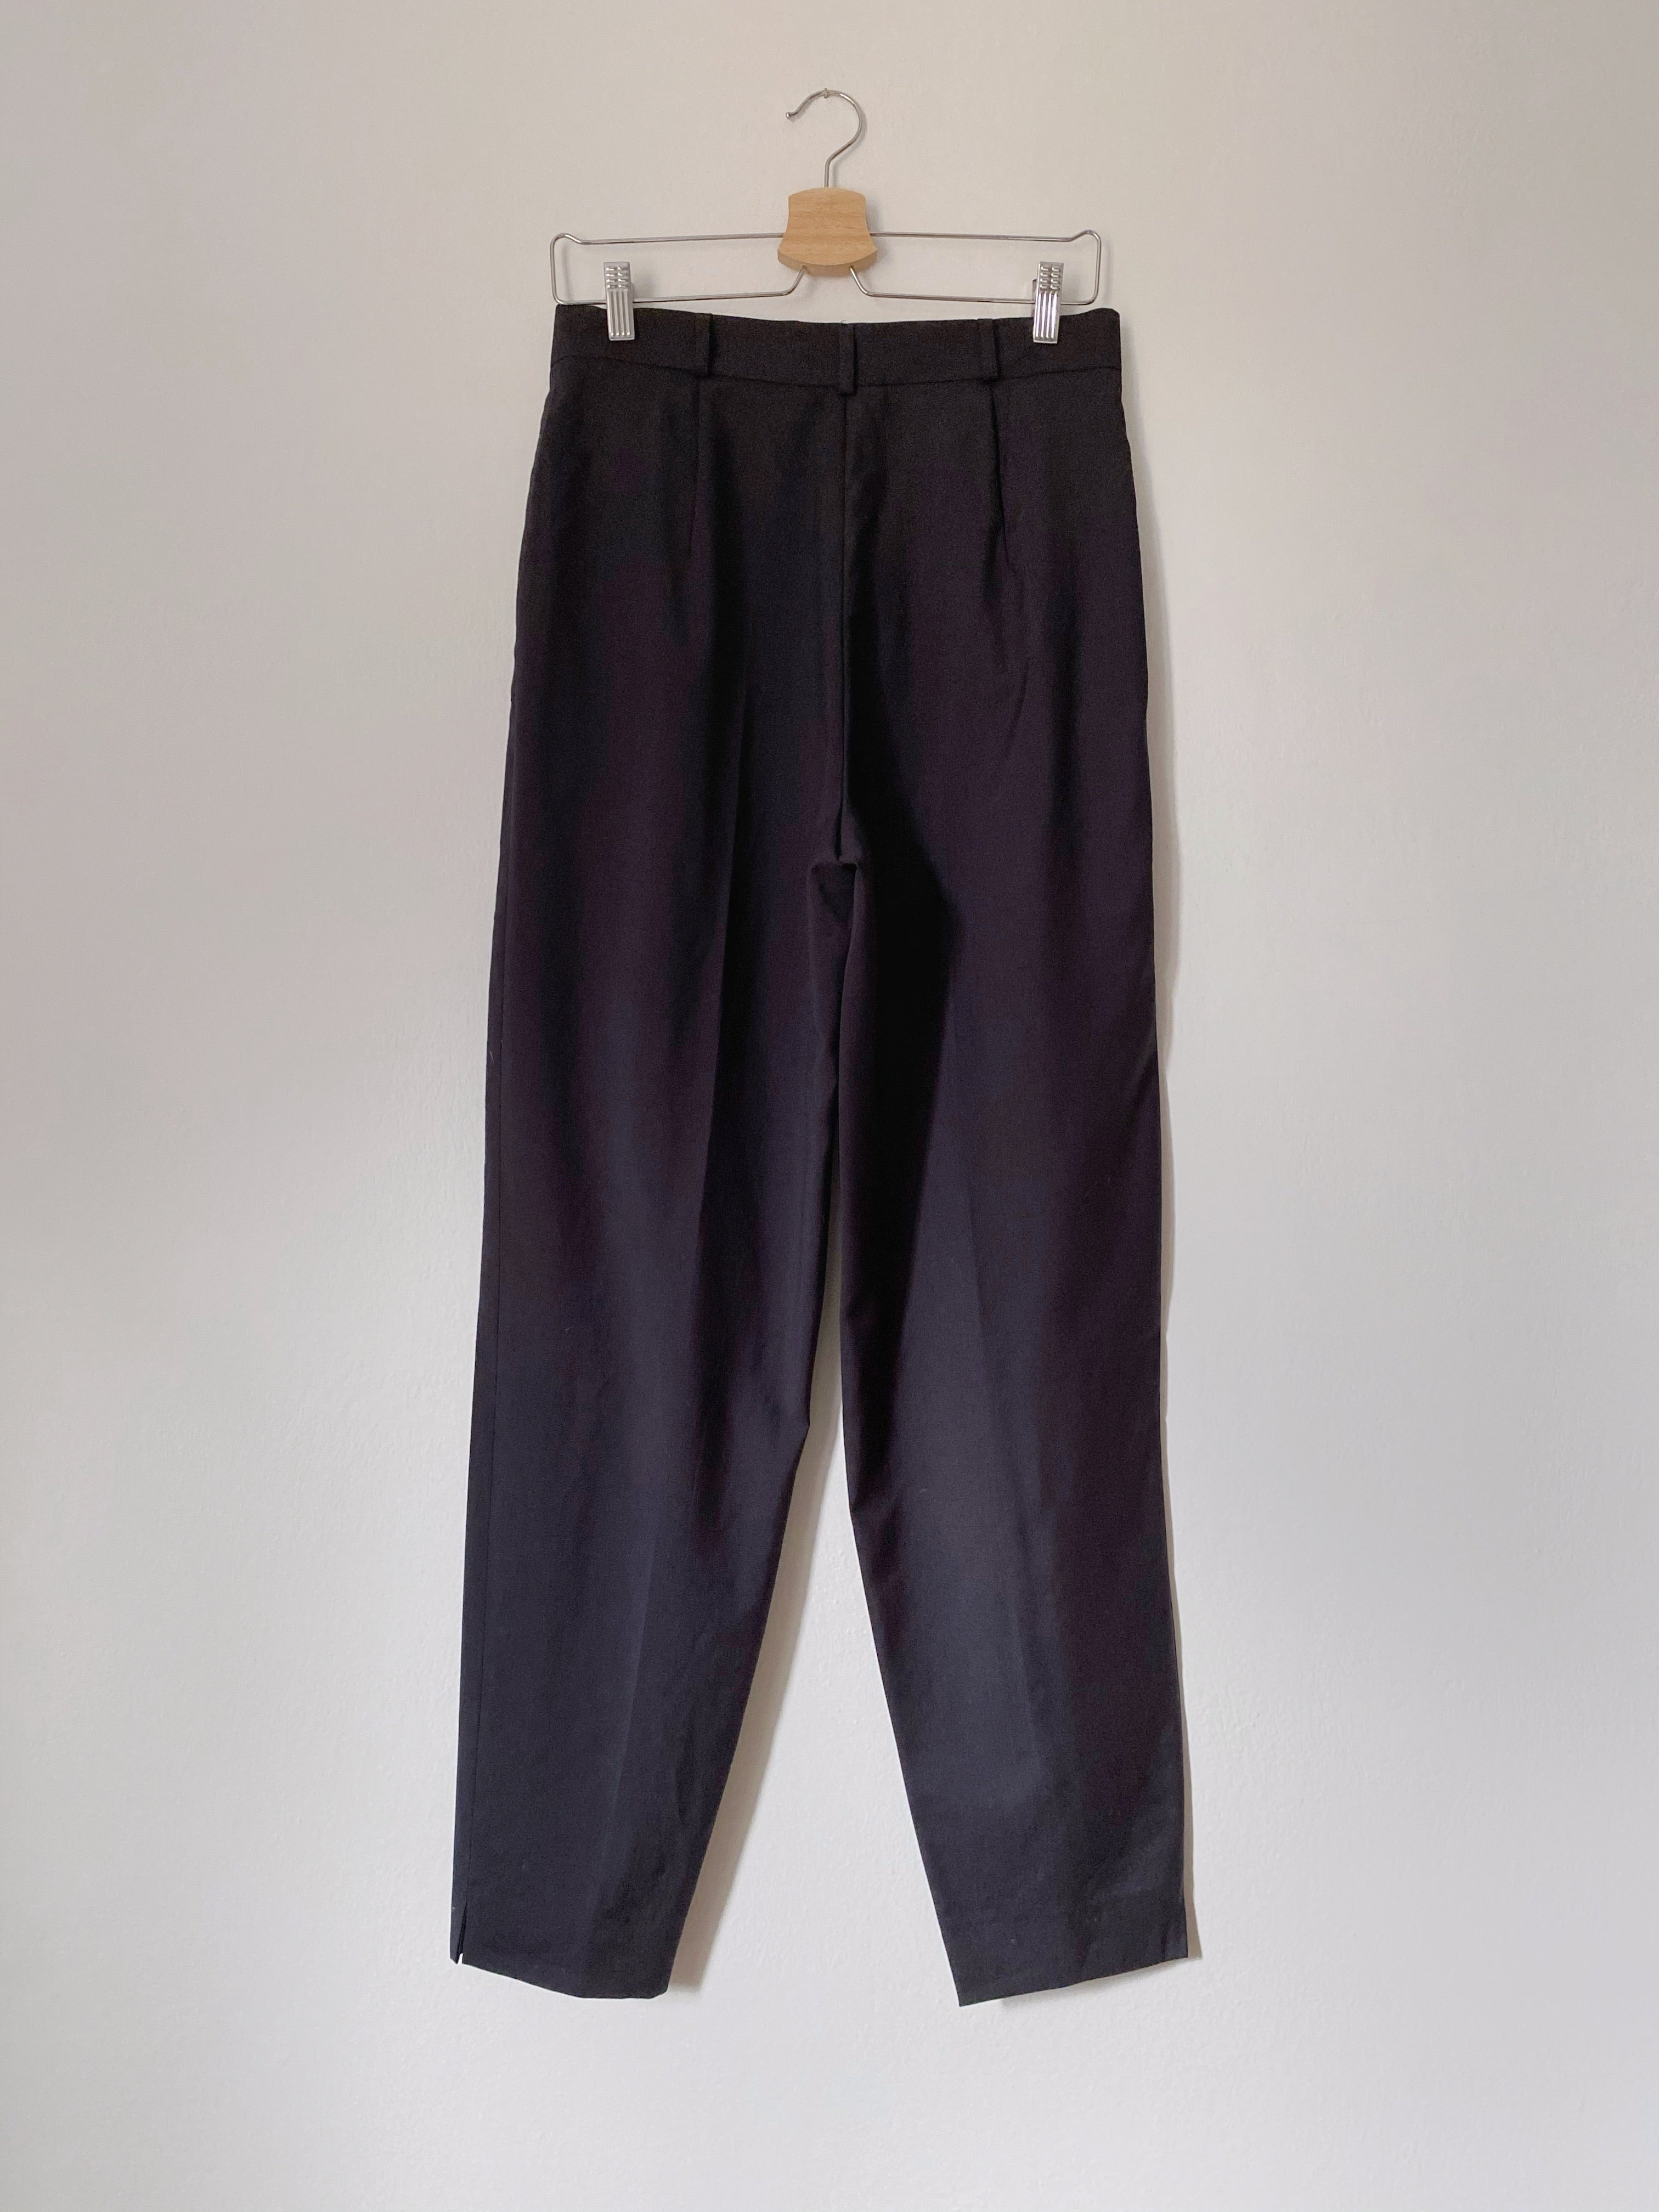 Vintage pure new wool high waist classic blue pants